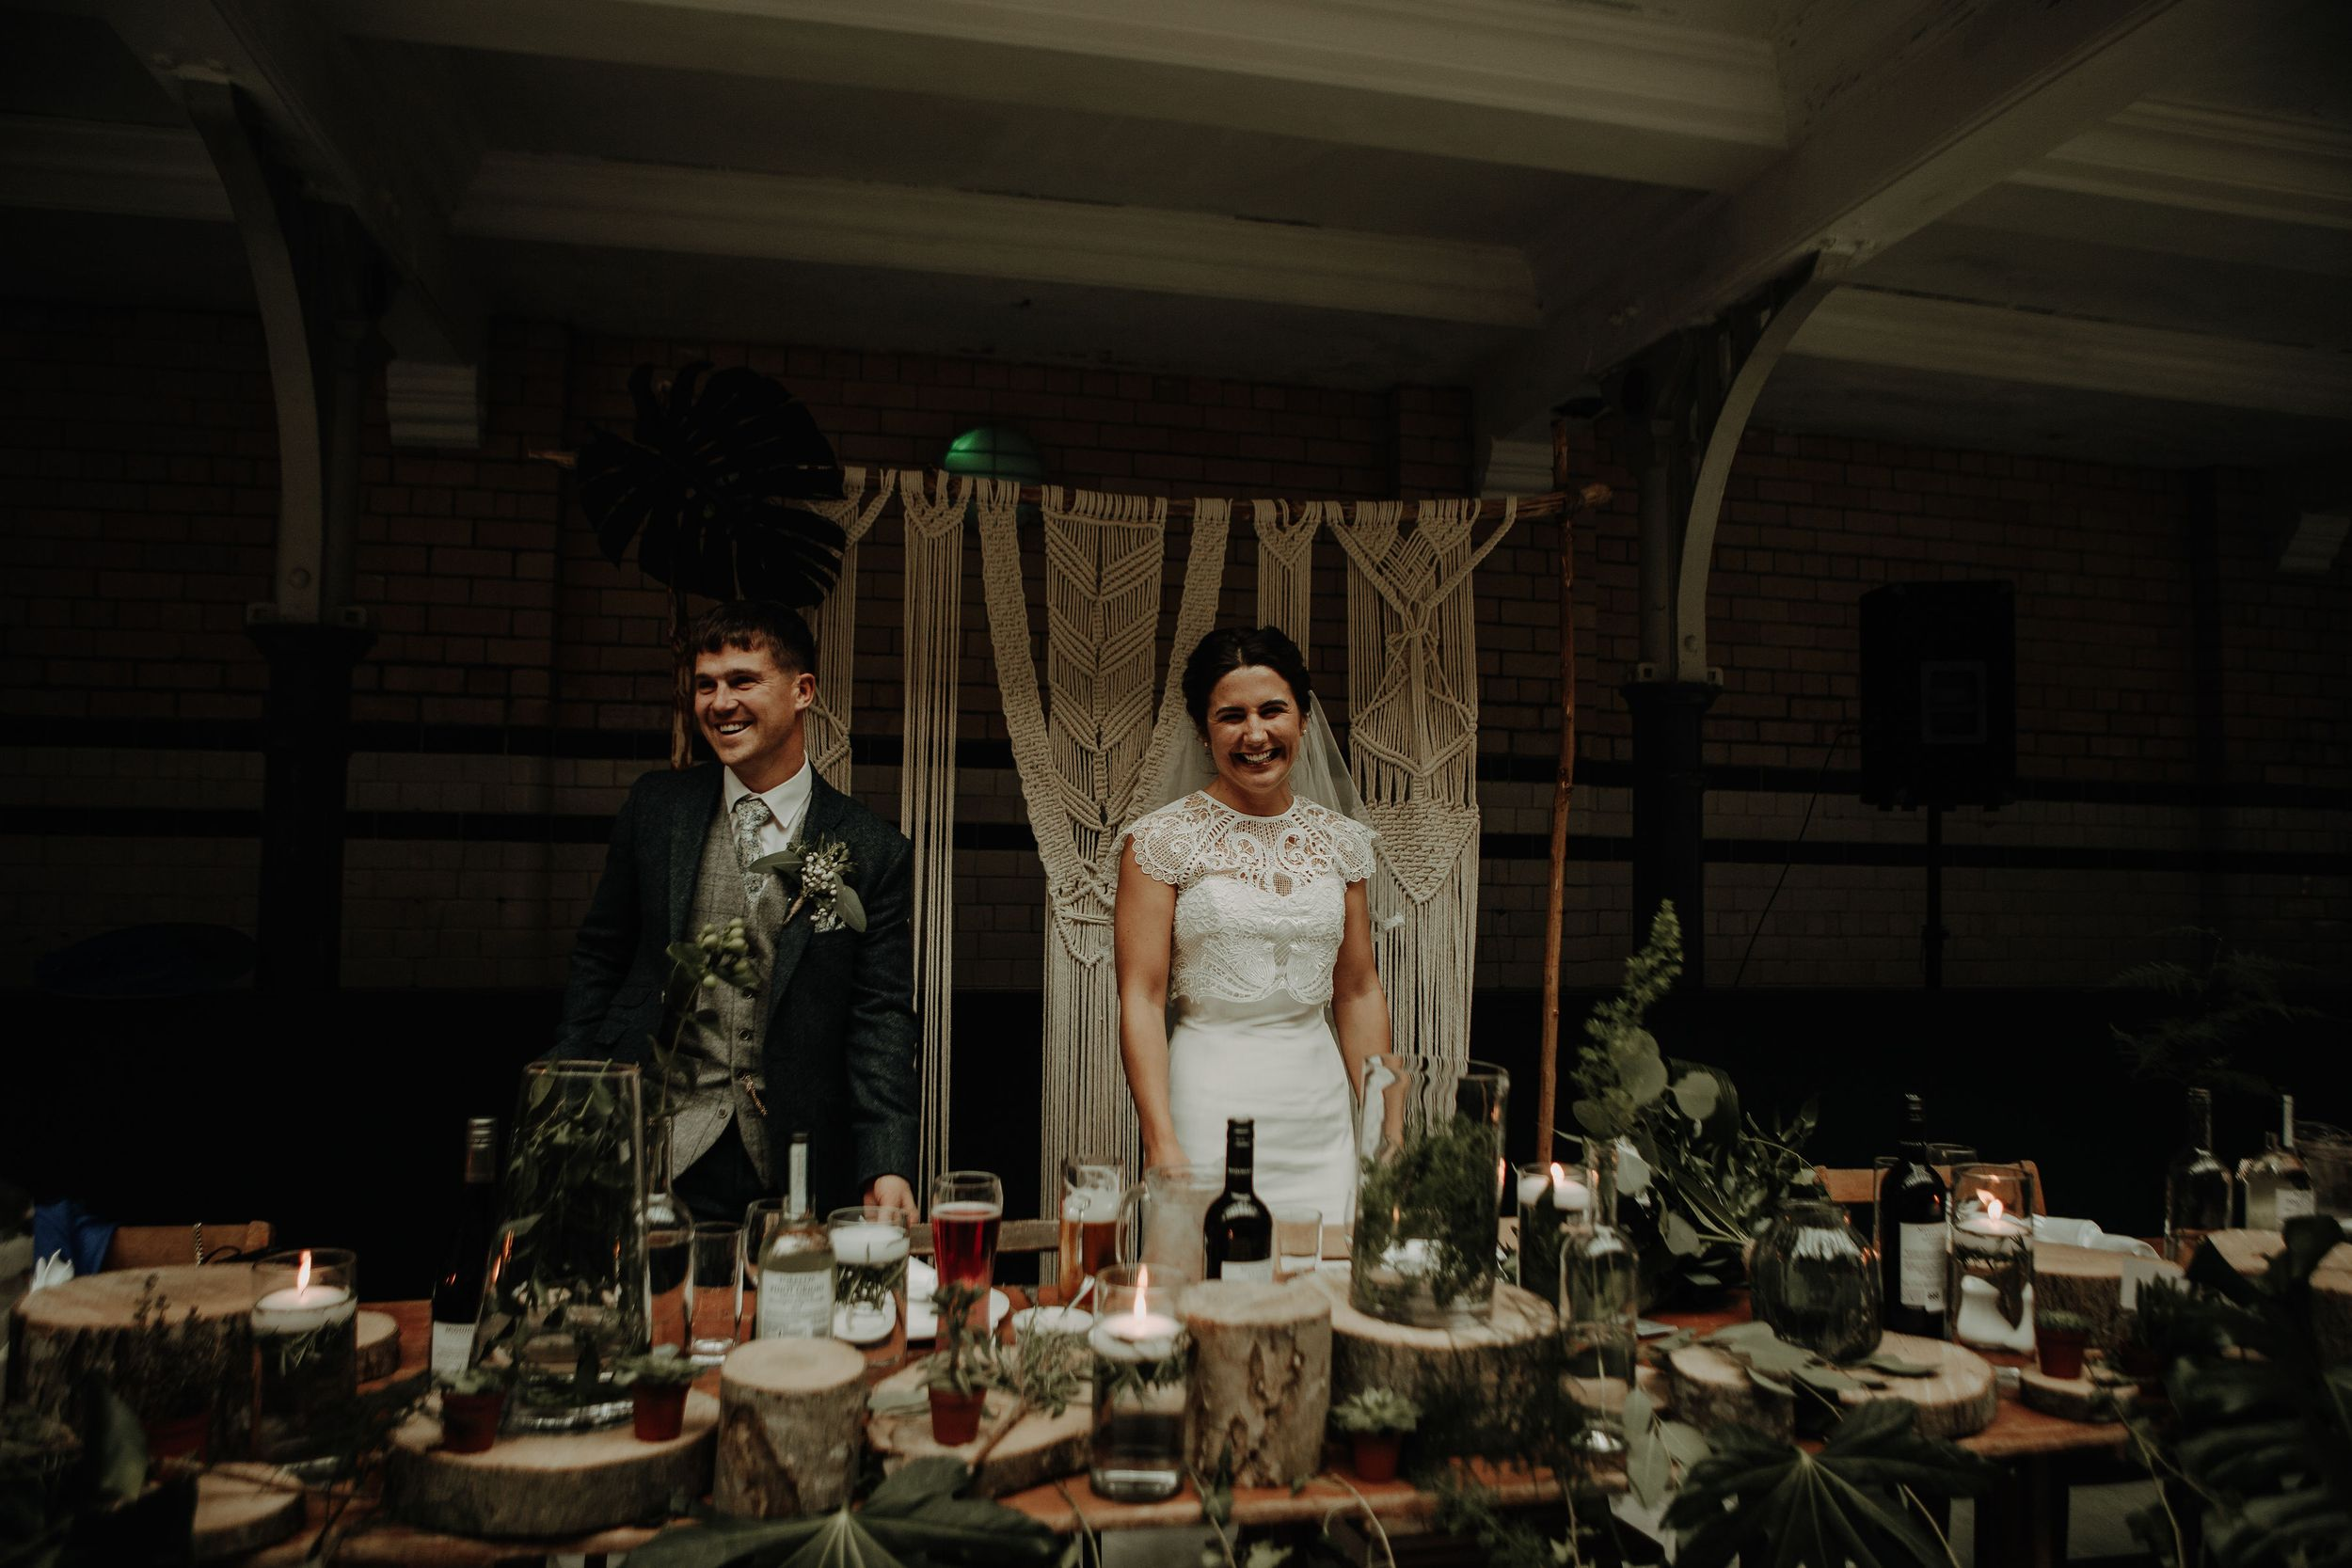 Wedding at Victoria Baths. Manchester Wedding photography by Esme Whiteside Photography